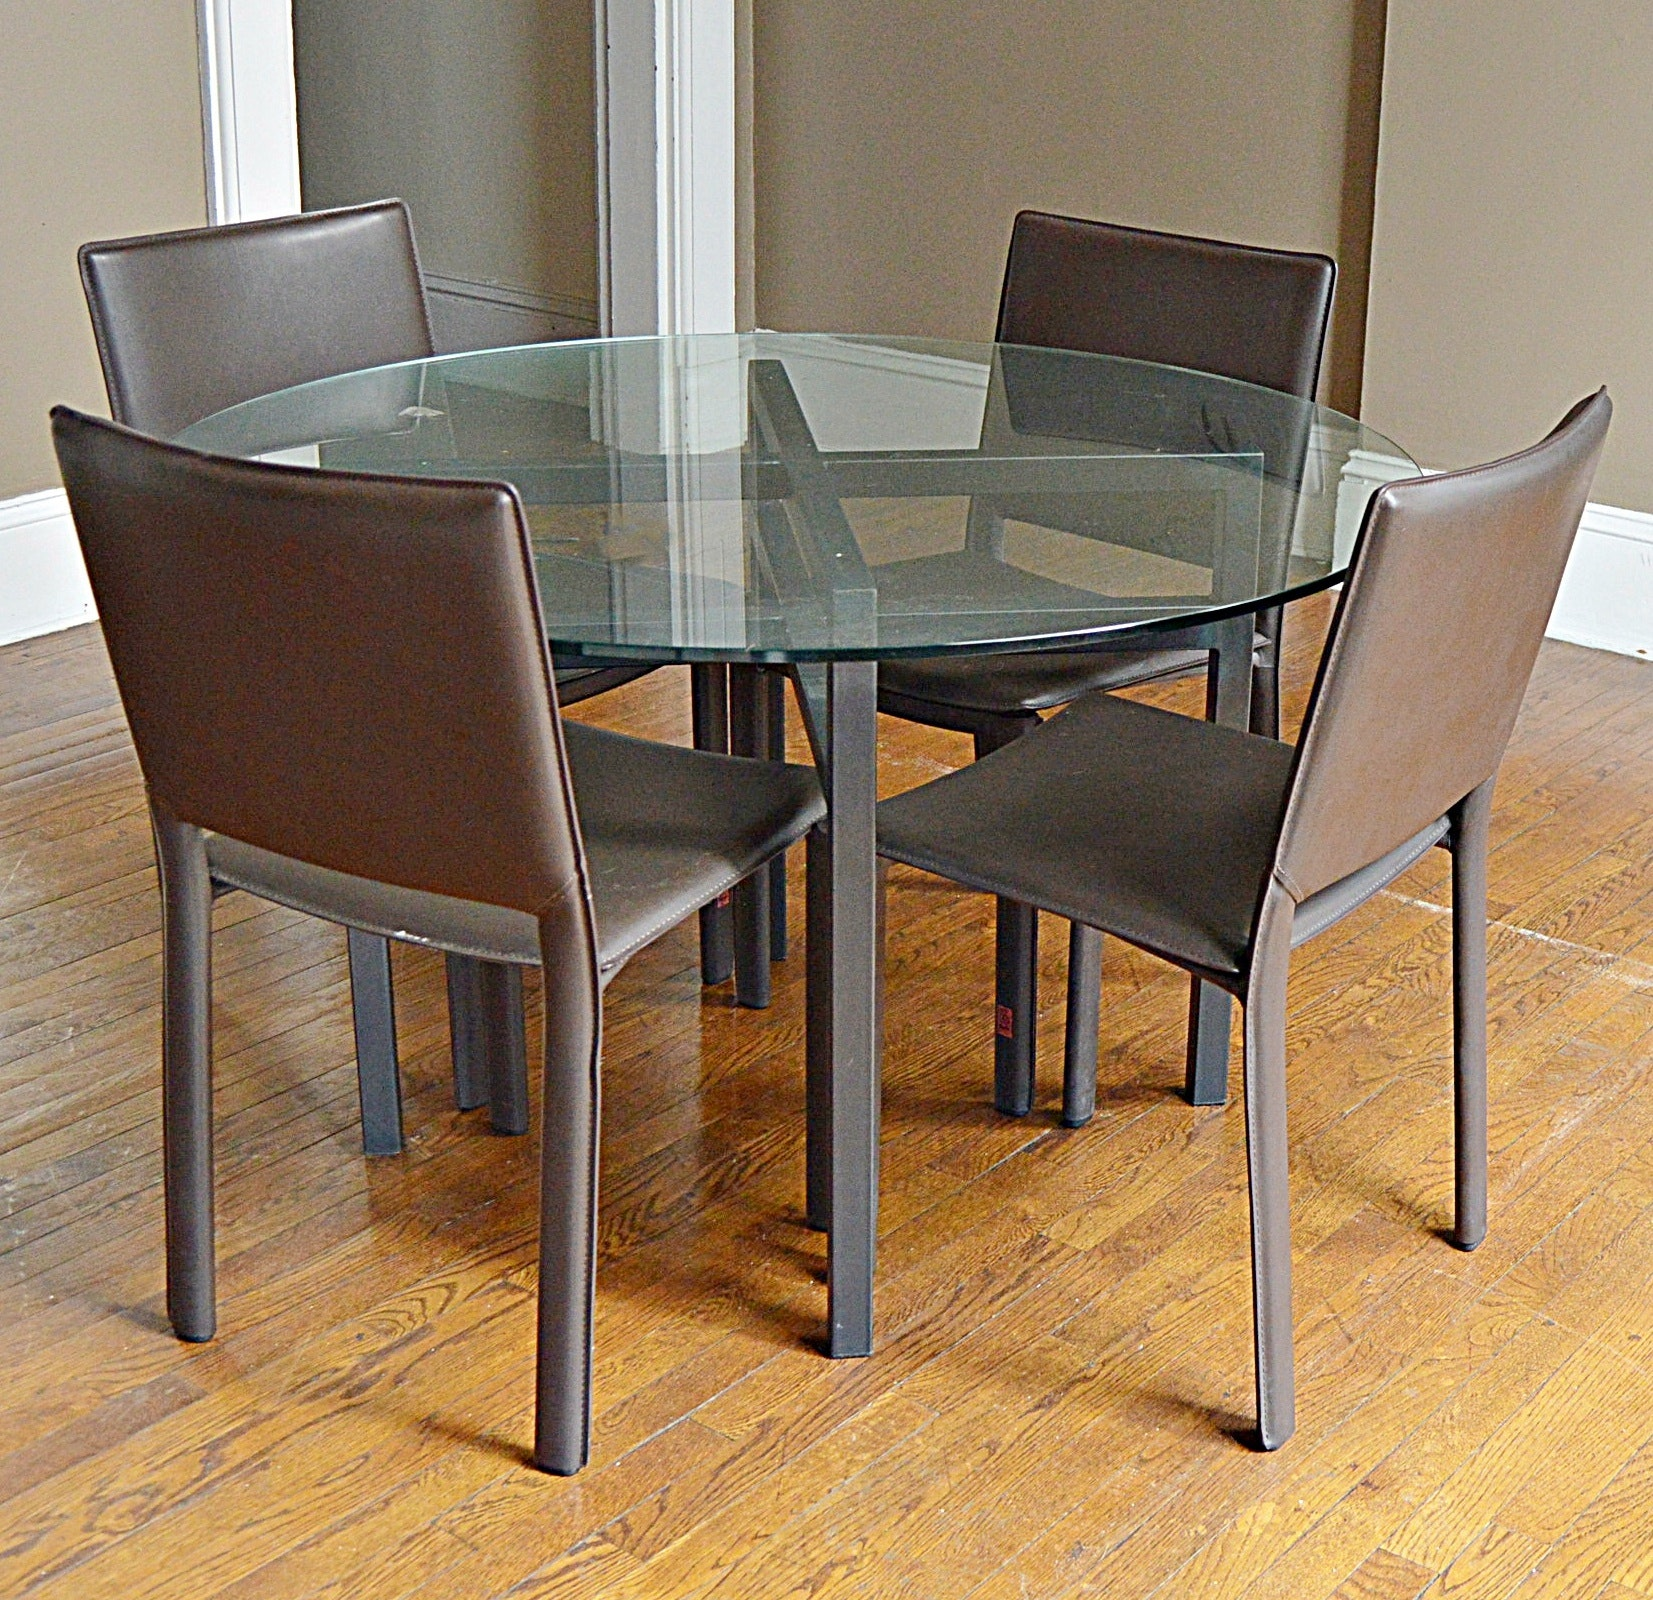 Contemporary Round Glass and Metal Dining Table with Four Faux Leather Chairs